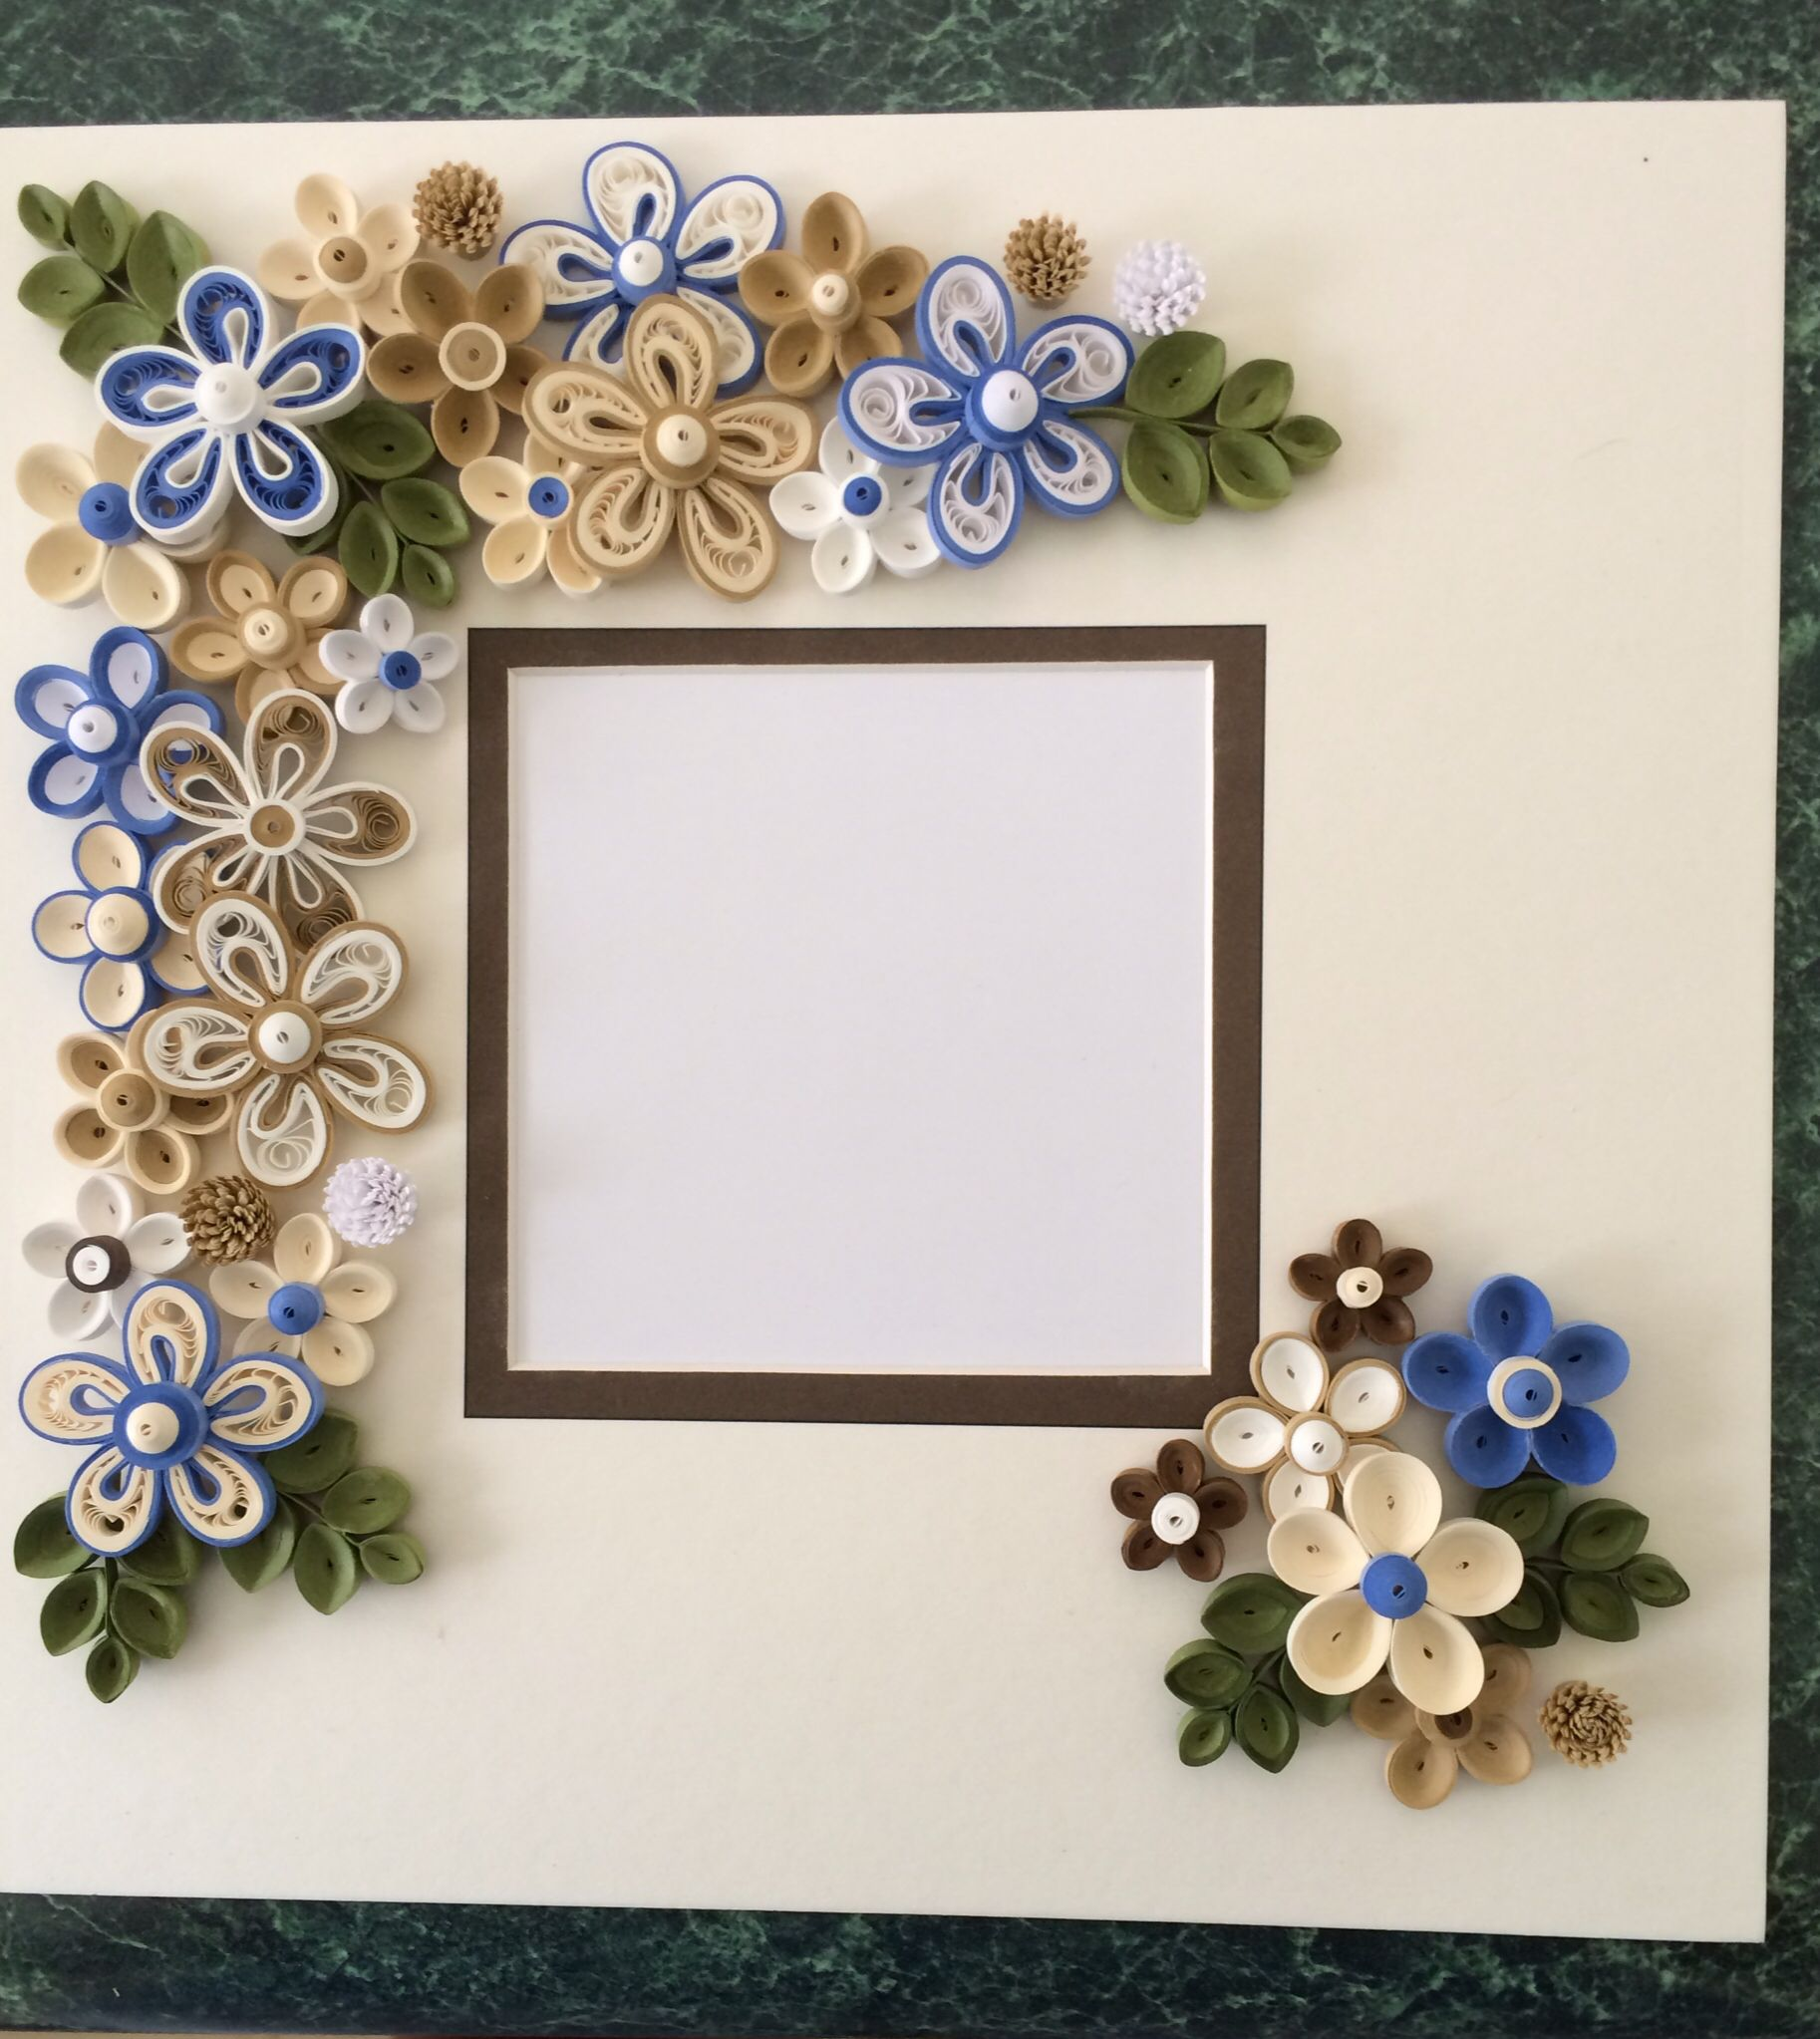 Quilled Frame   Quilling   Pinterest   Filigrana, Papel y Marcos